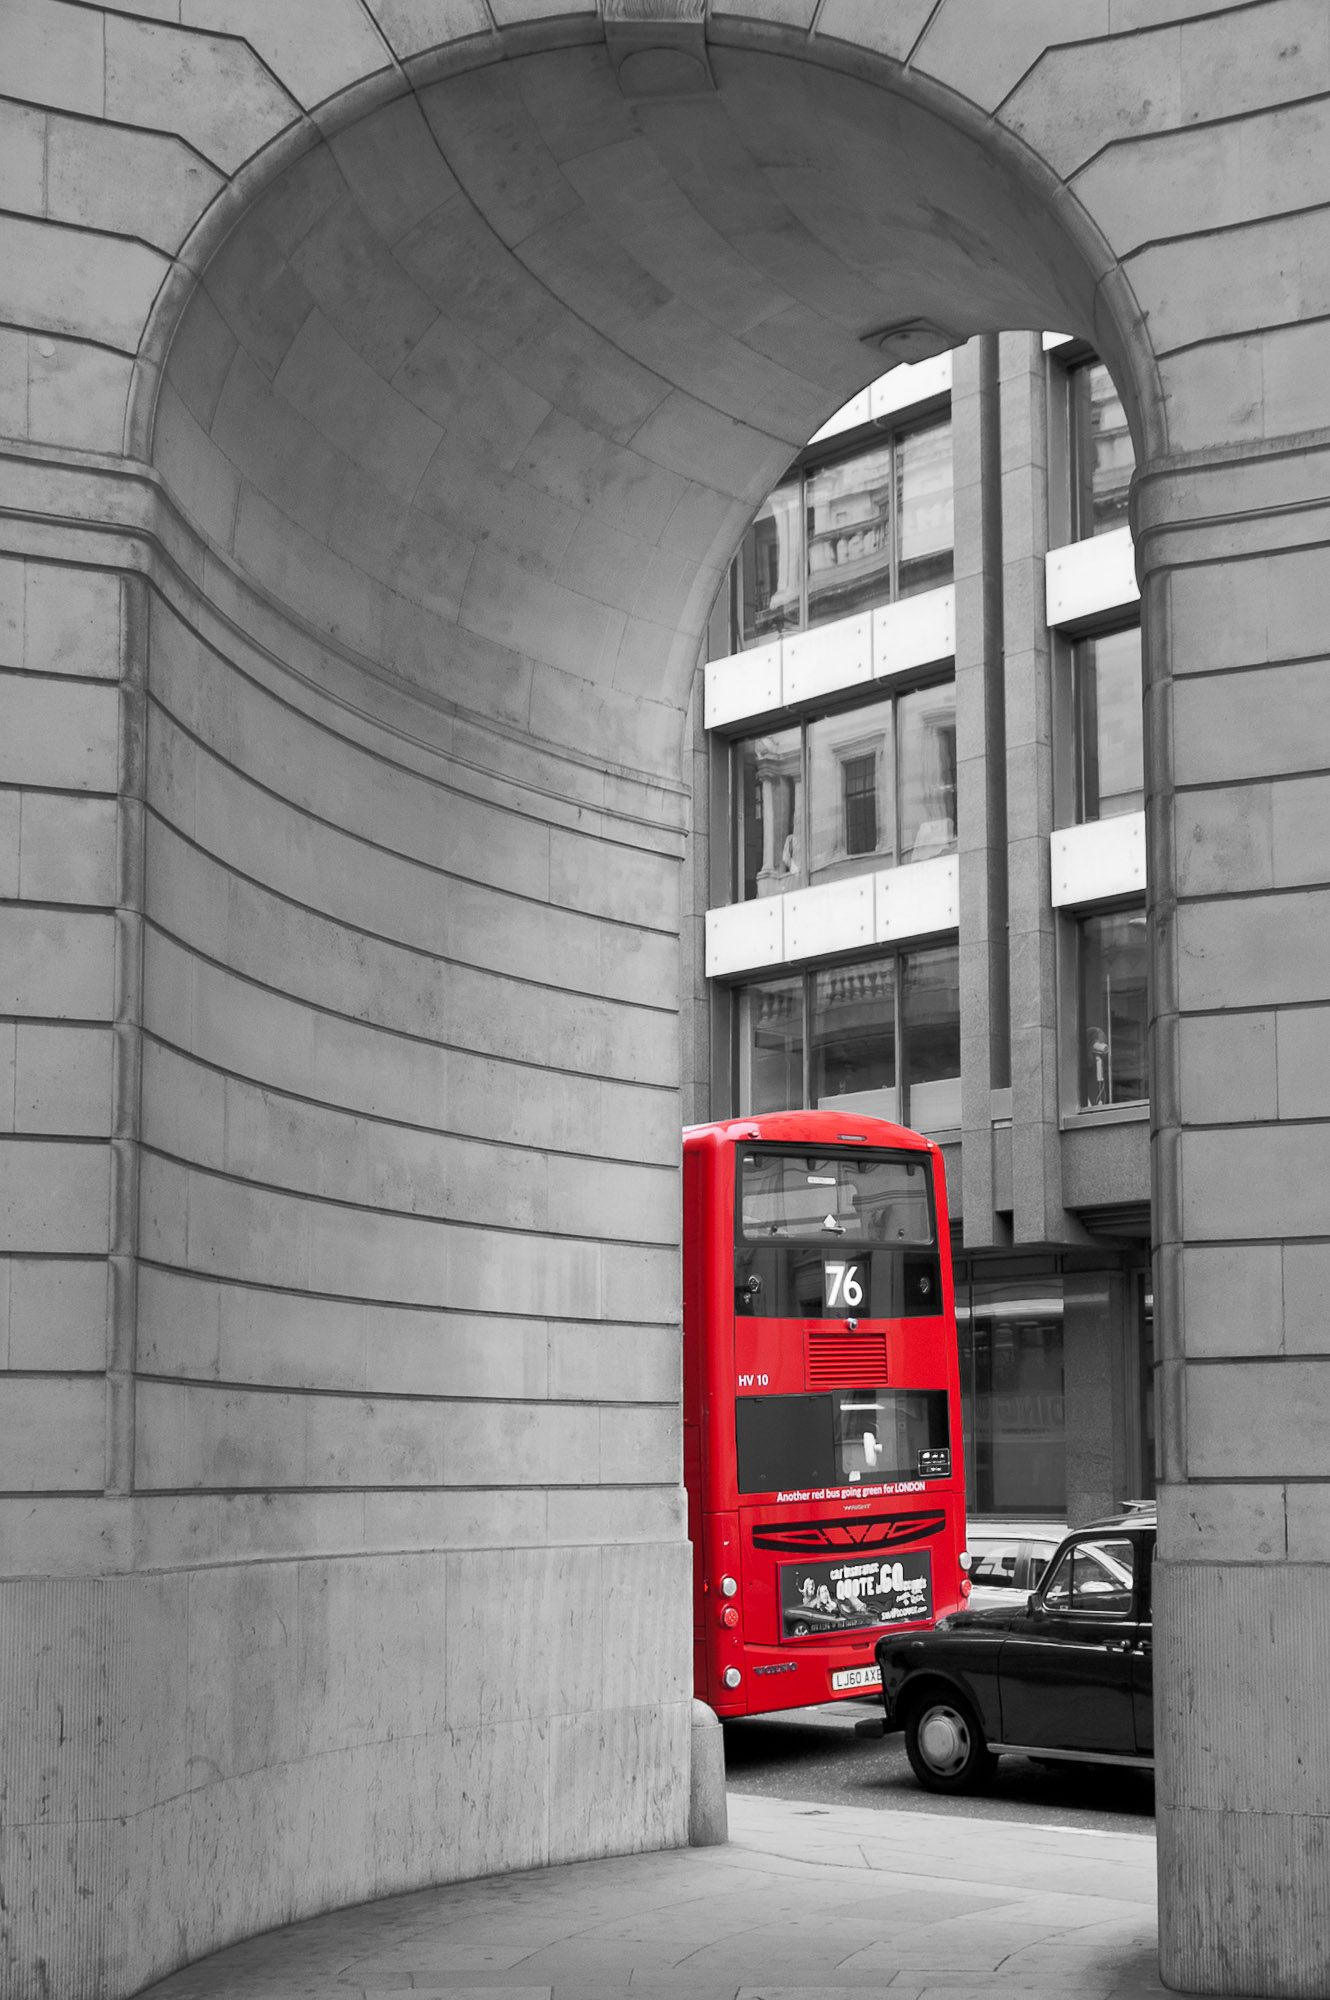 Red: Bus @ Royal Exchange